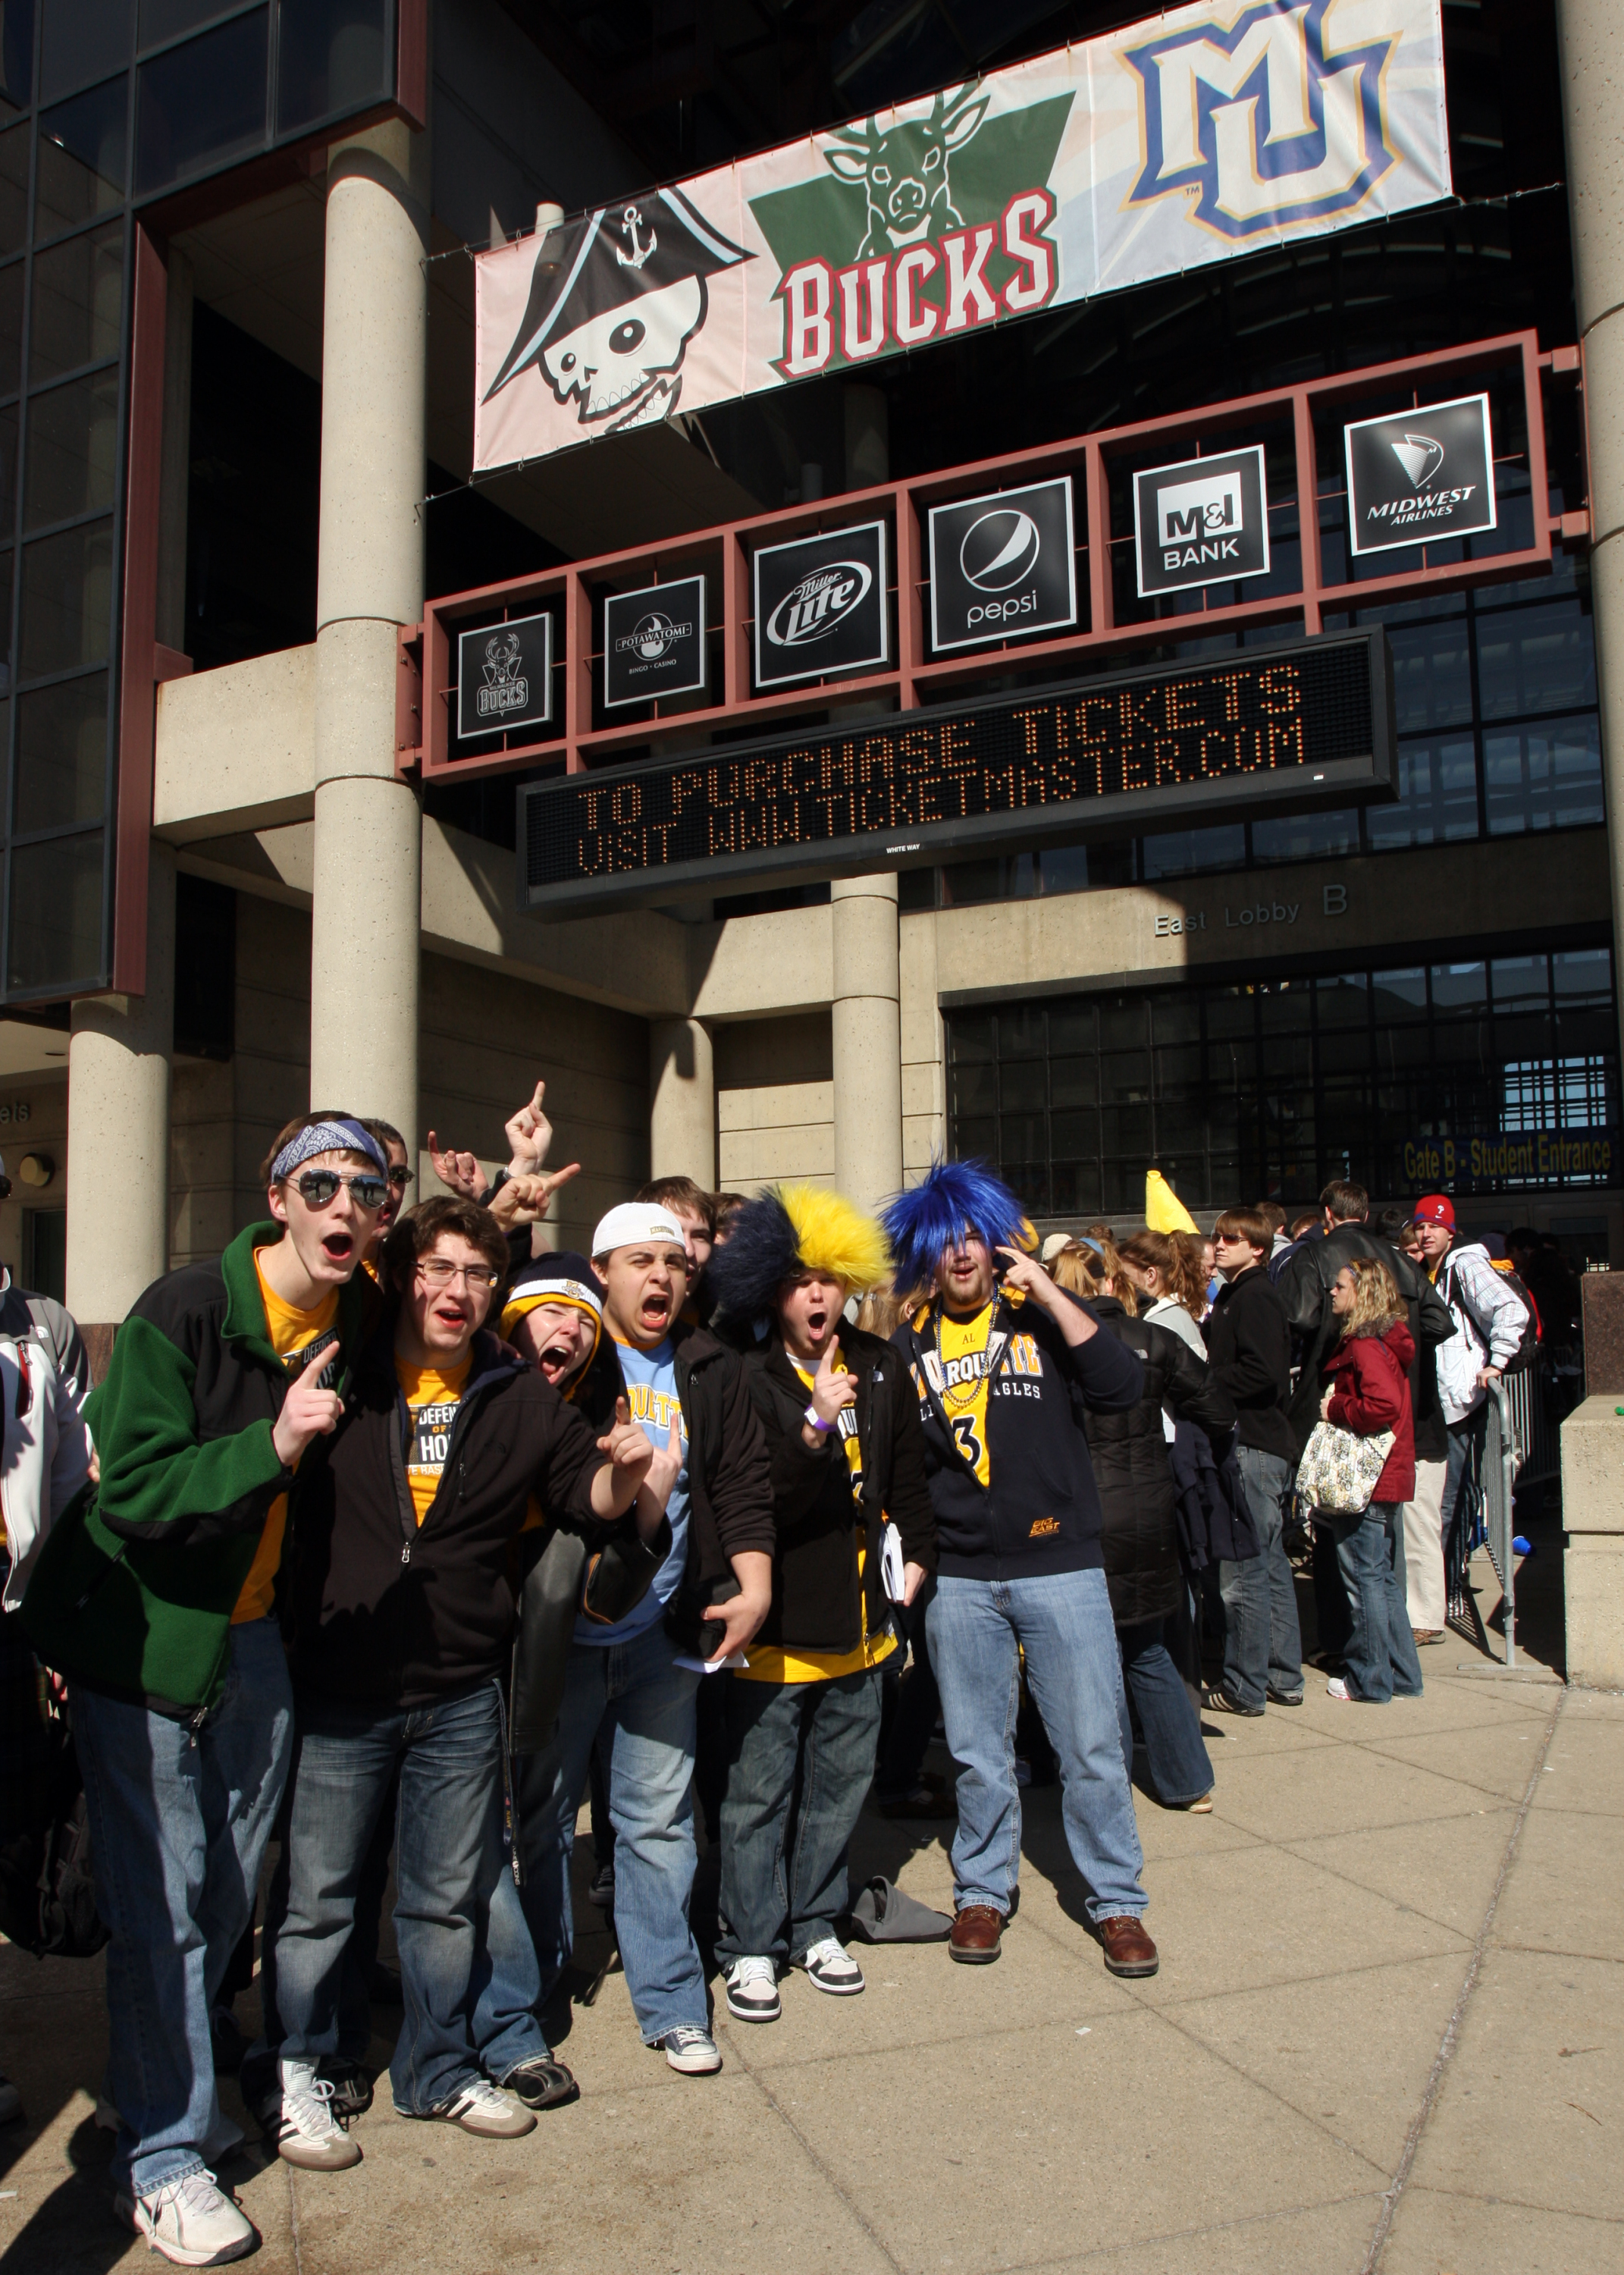 Marquette students play a key role in fan support at the Bradley Center.